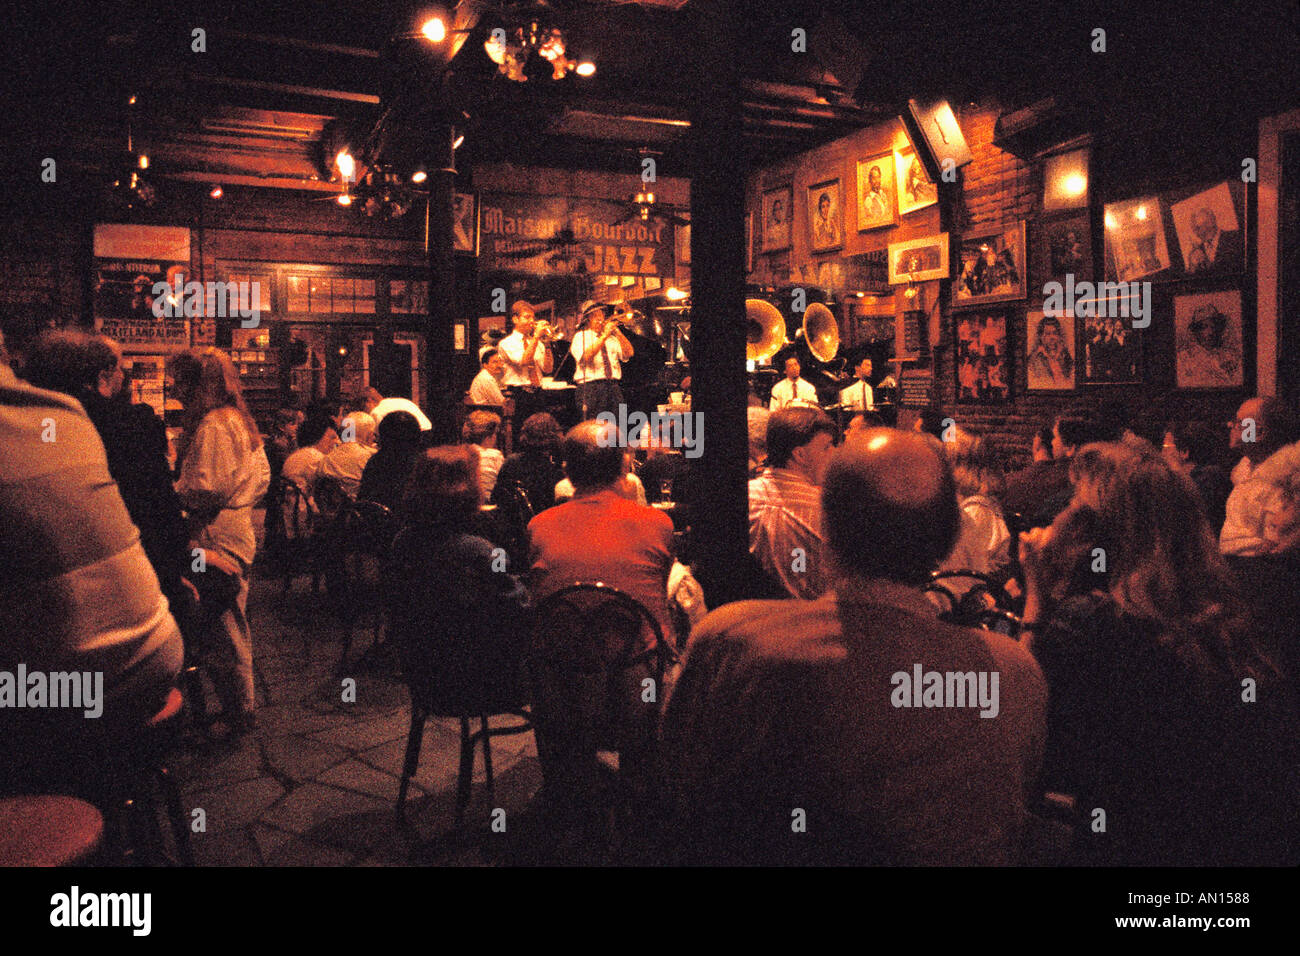 Jazz band and patrons in maison bourbon jazz club french quarter new orleans louisiana